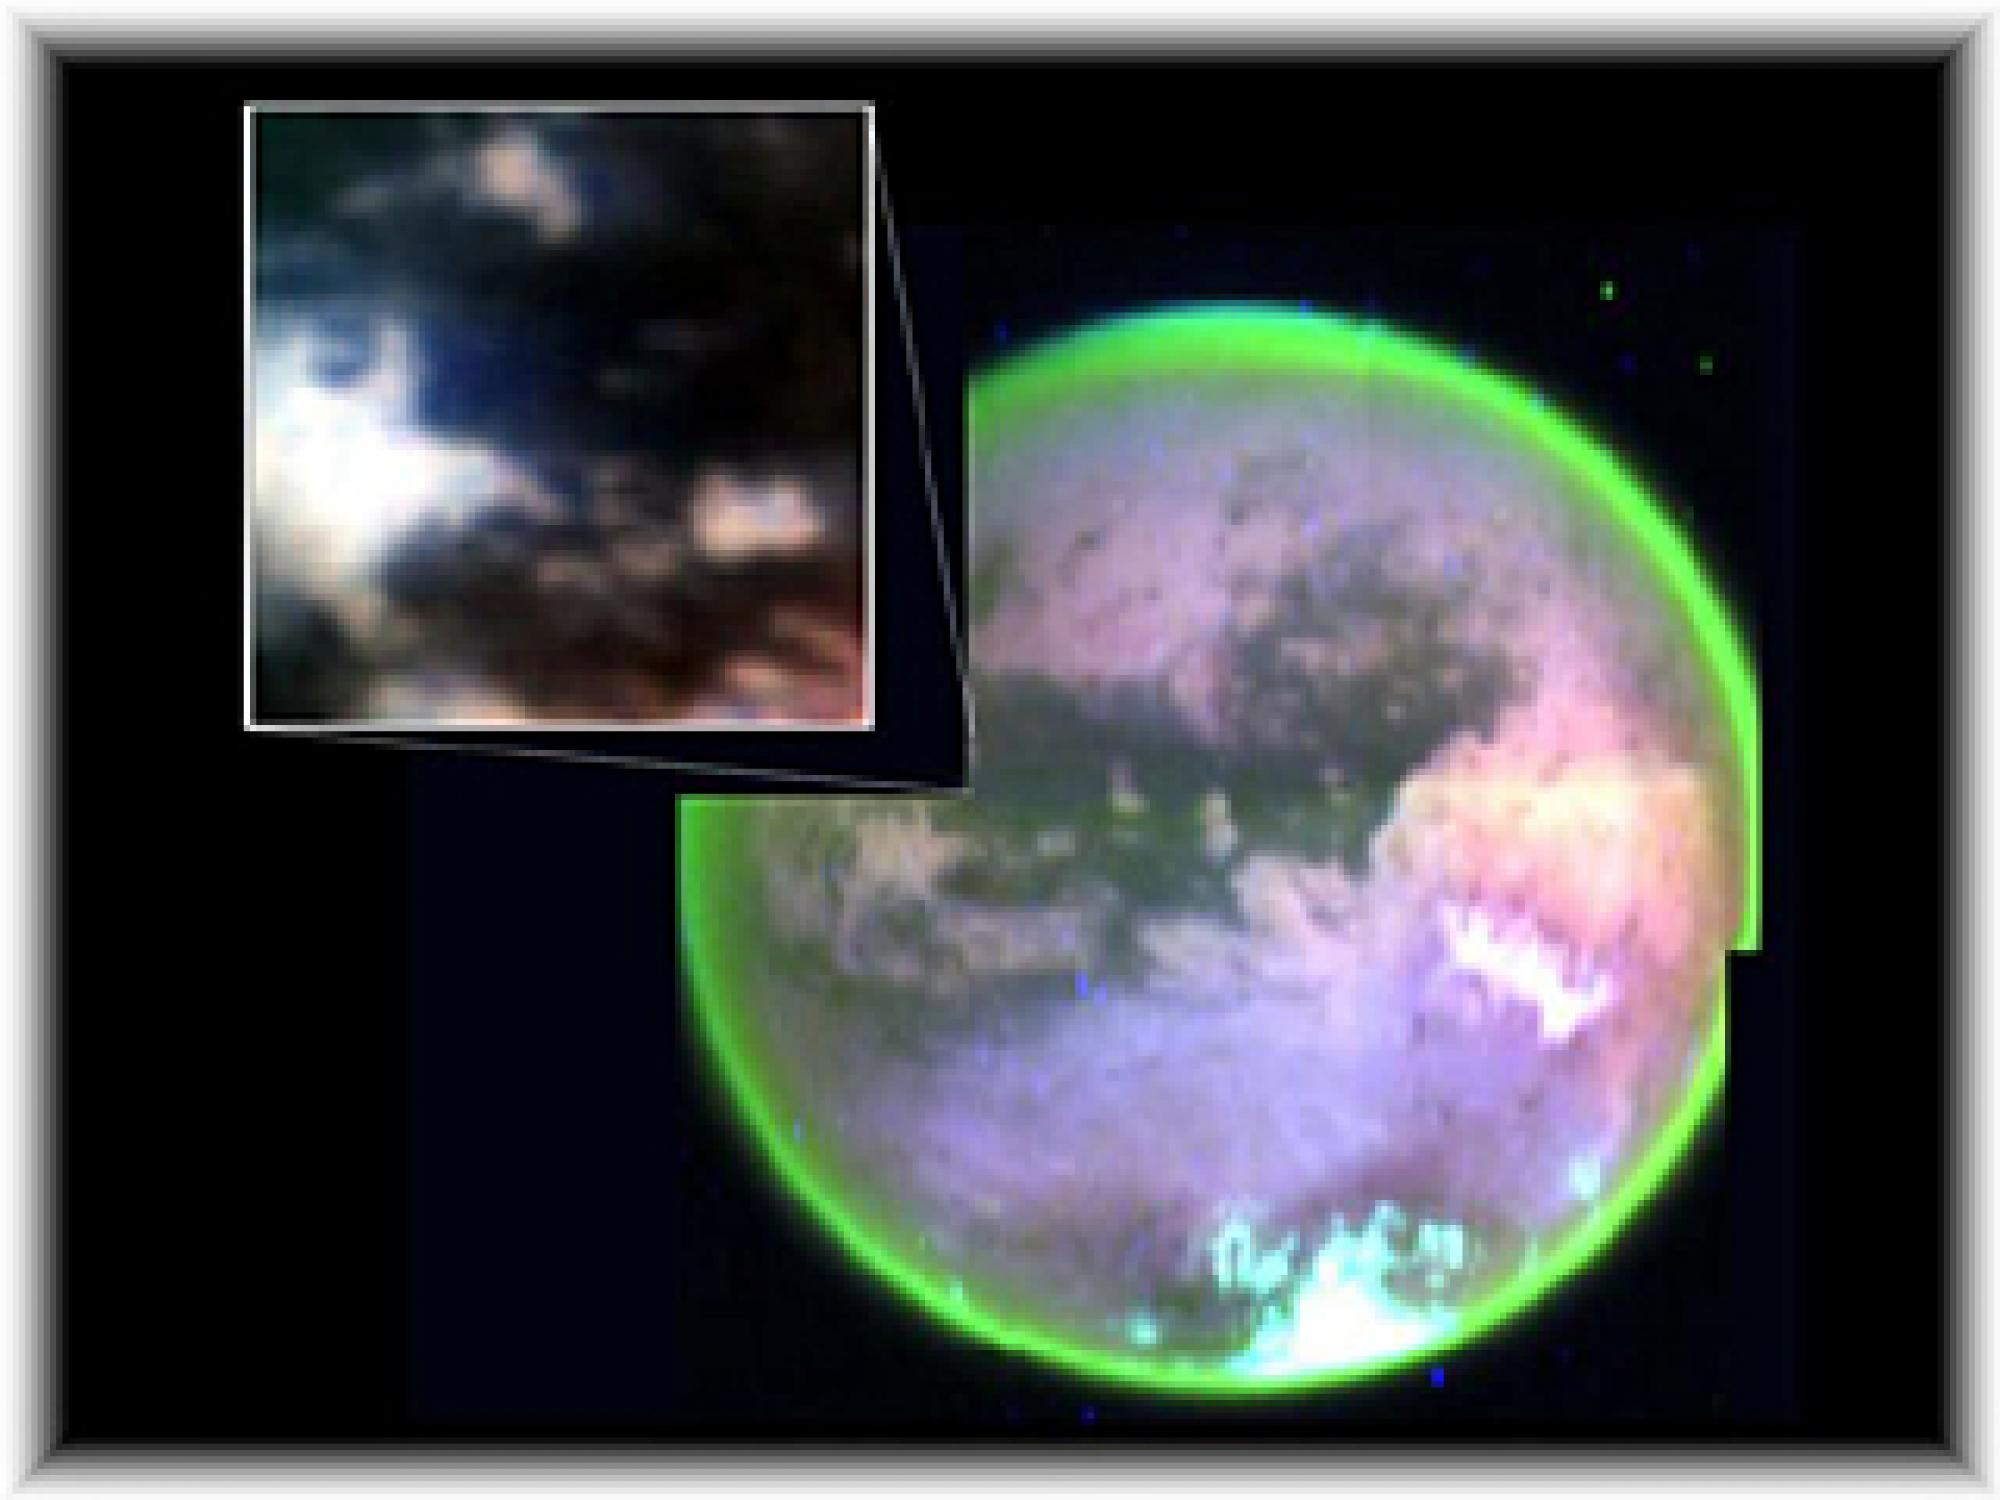 Titan's Complex Surface -This image taken by Cassini's visual and infrared mapping spectrometer clearly shows surface features on Titan. It is a composite of false-color images taken at three infrared wavelengths as Cassini flew by Titan at alti